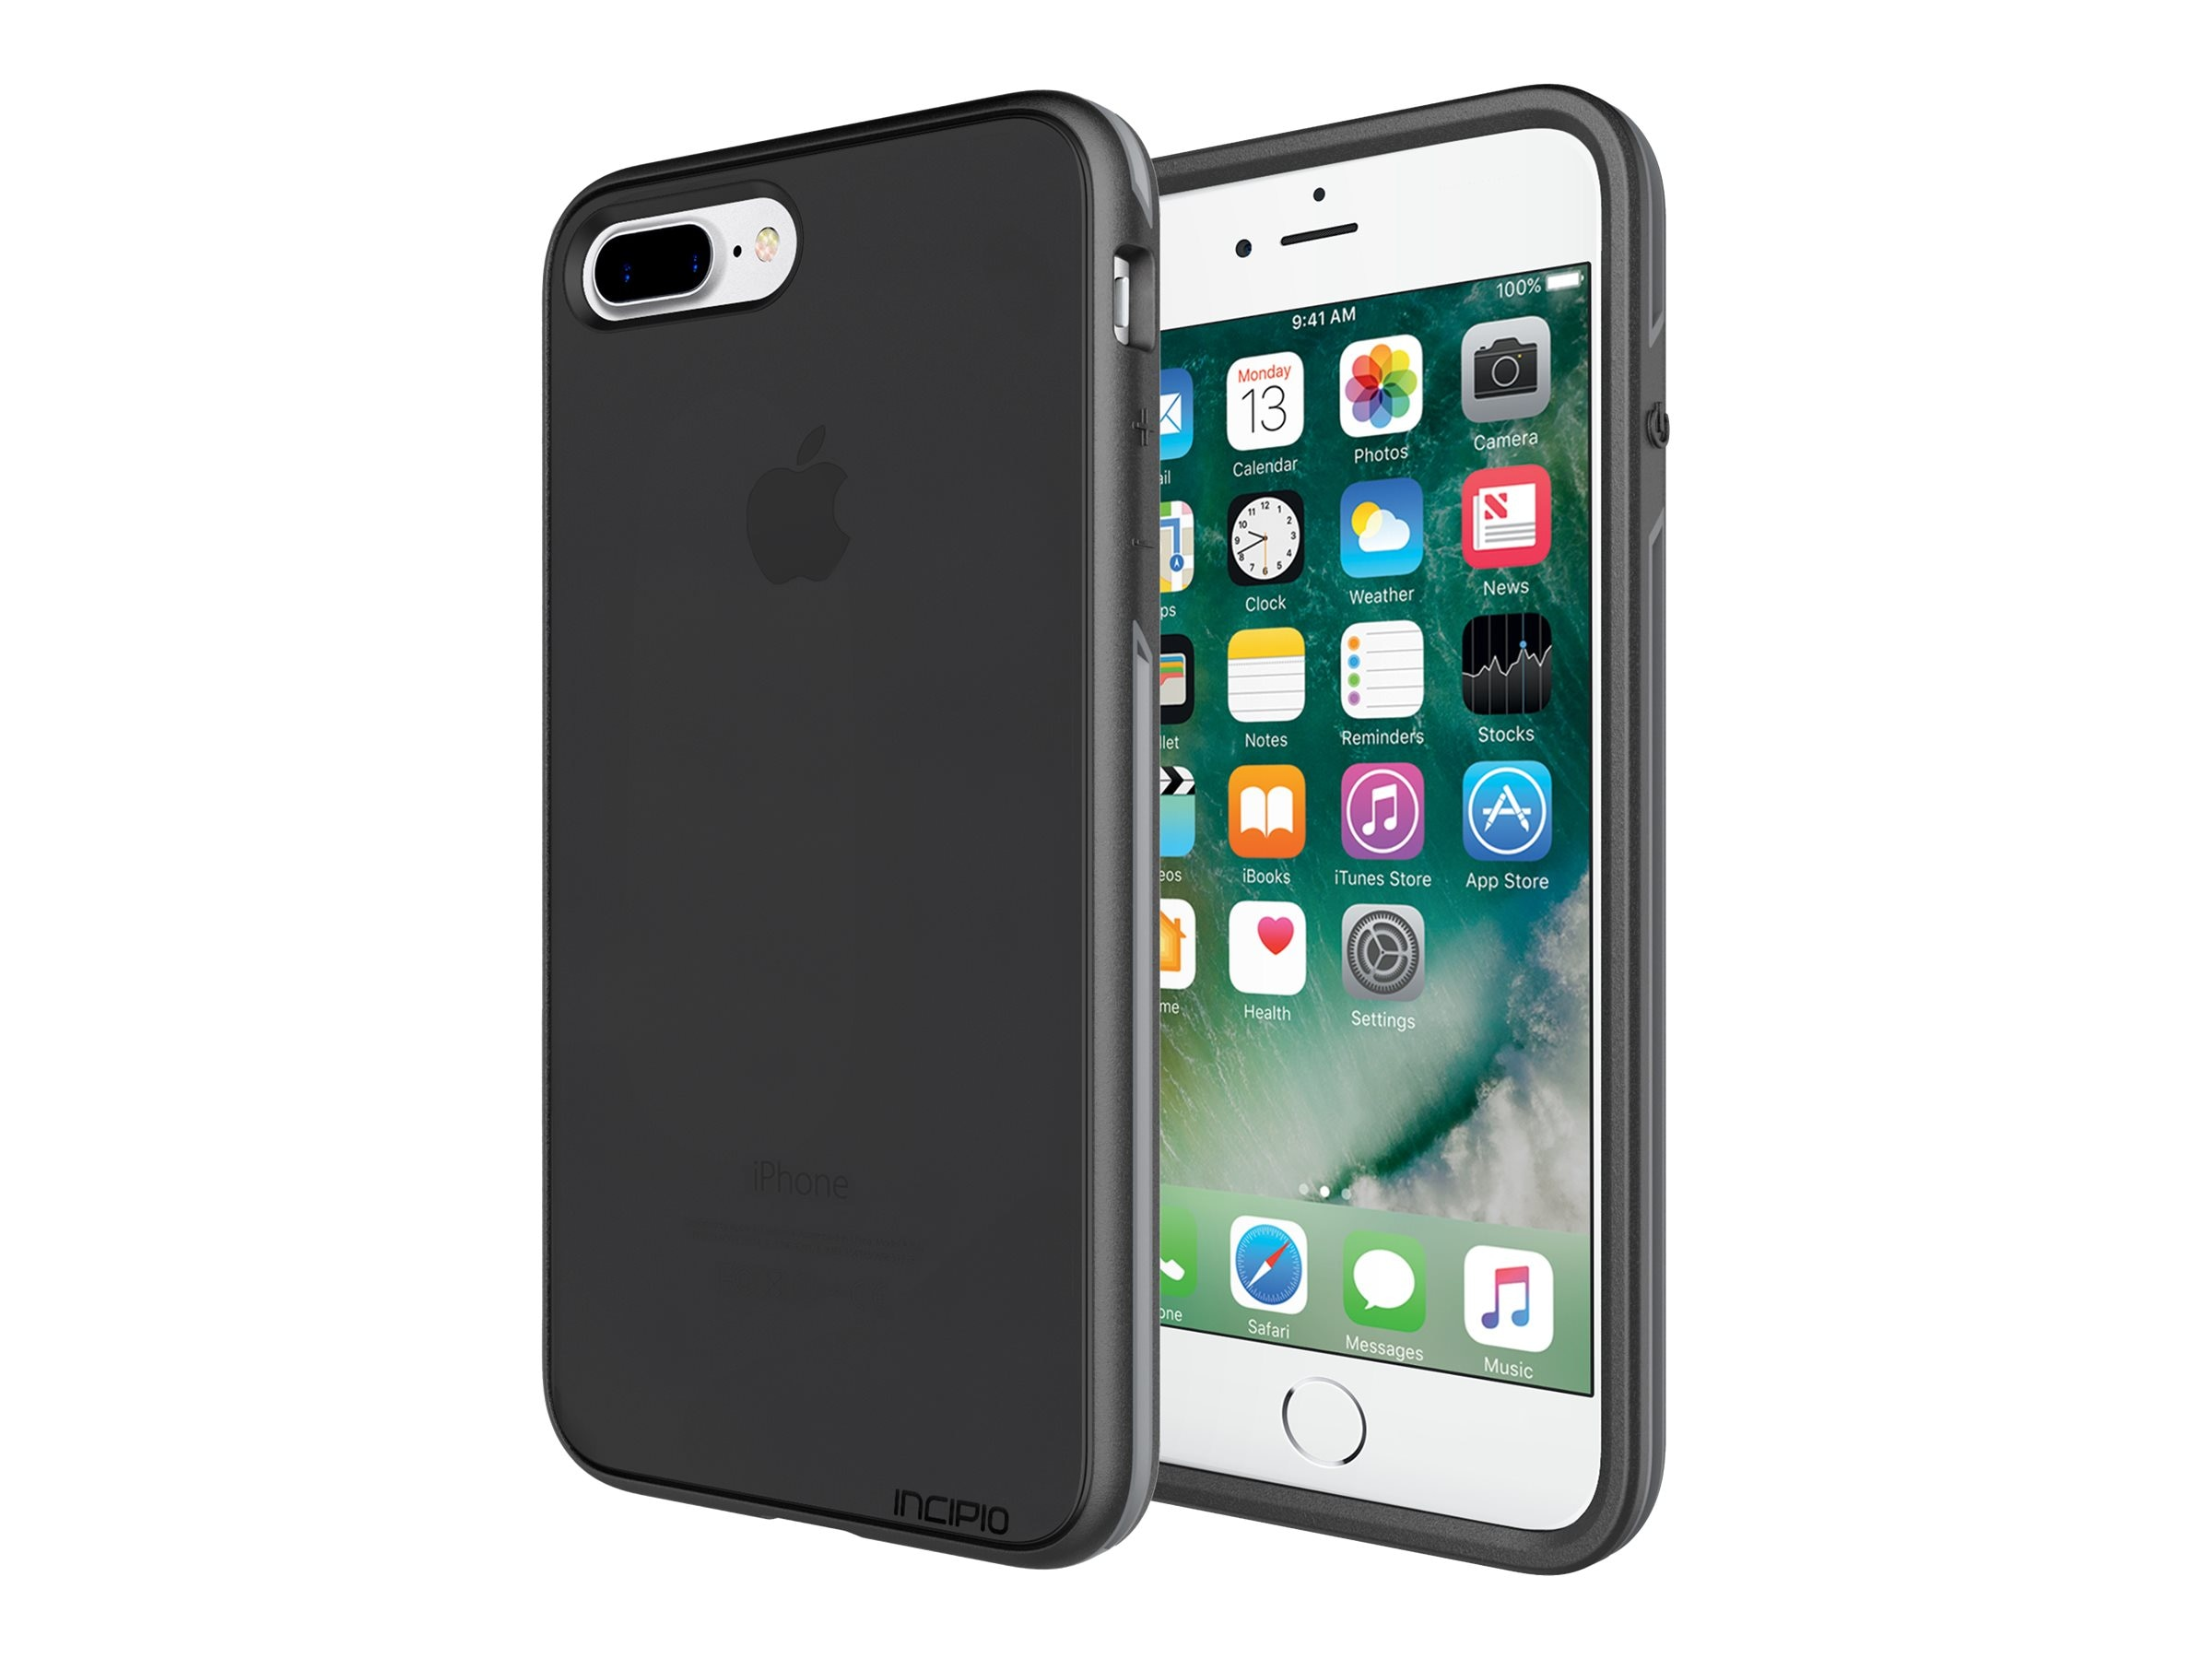 Incipio Performance Series Slim Case for iPhone 7 Plus, Smoke Charcoal, IPH-1514-SCH